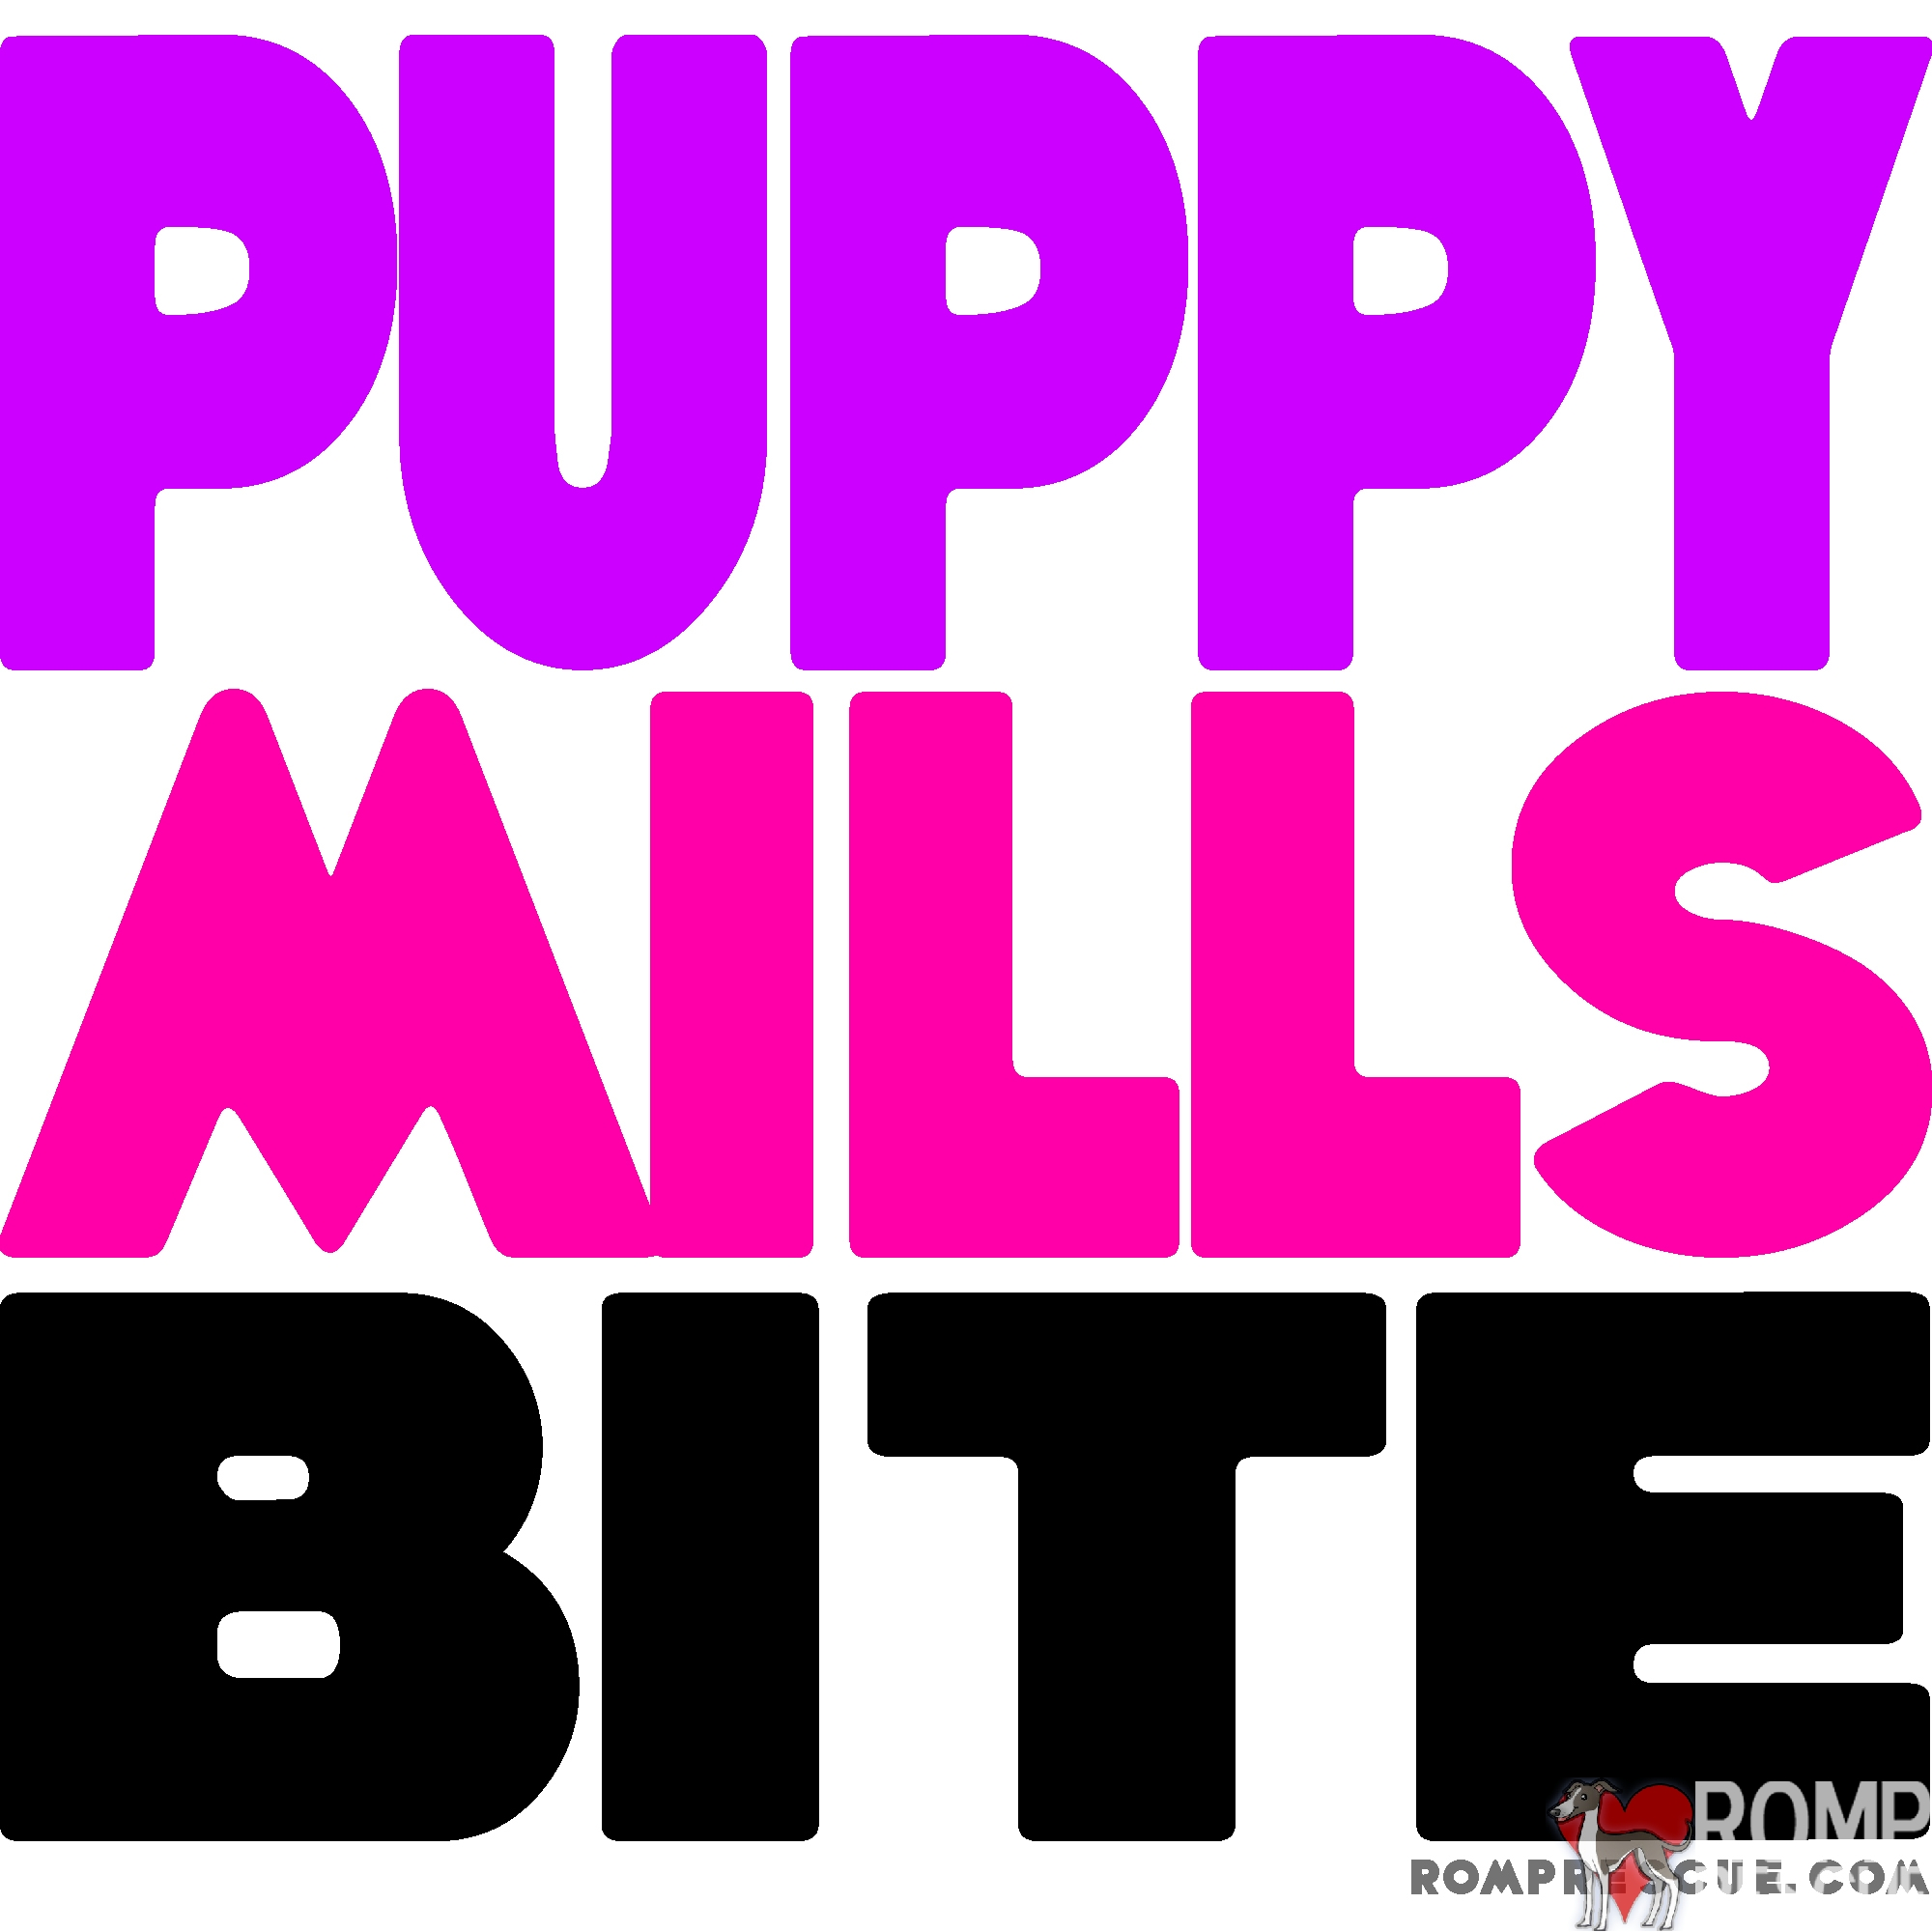 puppy mills bite, puppy mills, no, stop, dont, adopt, rescue, help, shirt, design, colorful, trendy, cool, neon